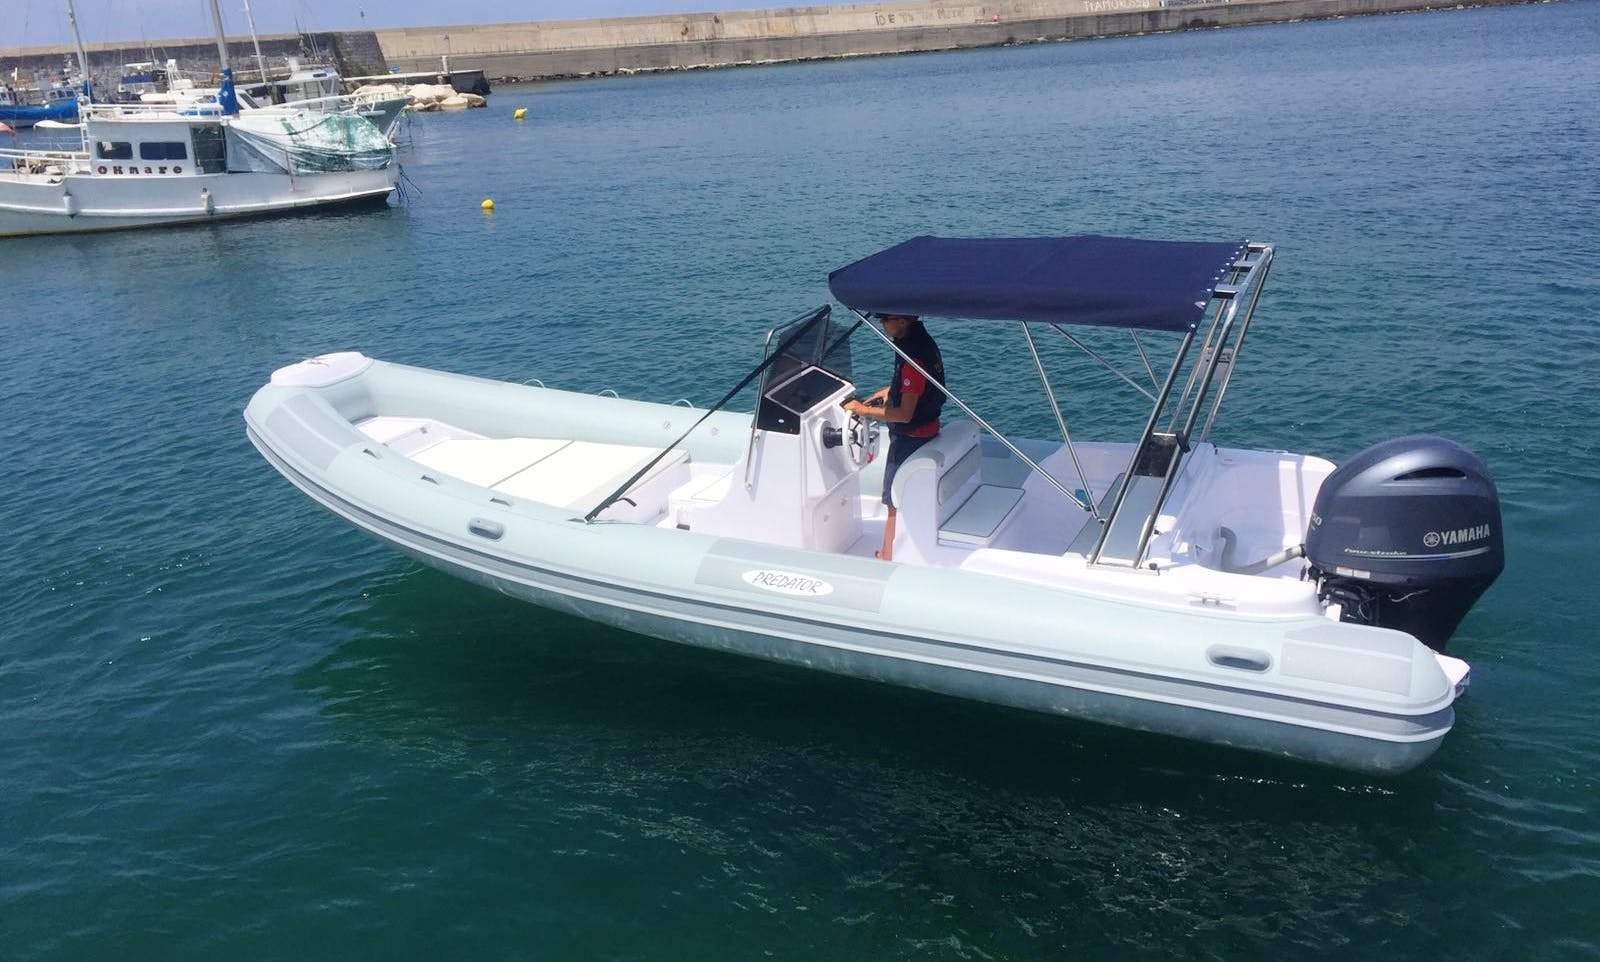 Predator 7.3 Meters RIB Rental for 8 People in Forio, Italy